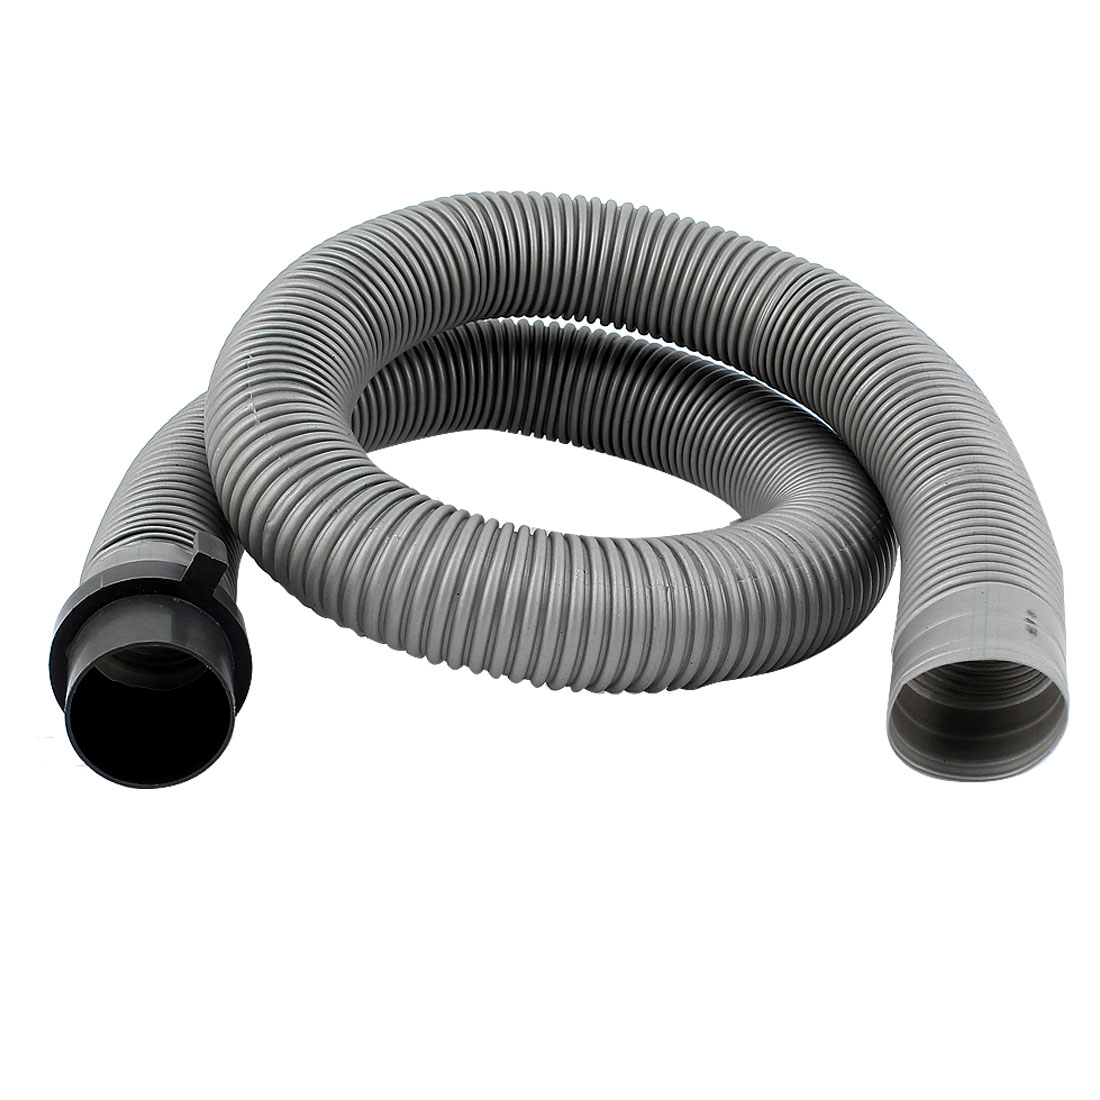 Washer Washing Machine Extendable Outlet Drain Hose Pipe 1.2M Long Gray